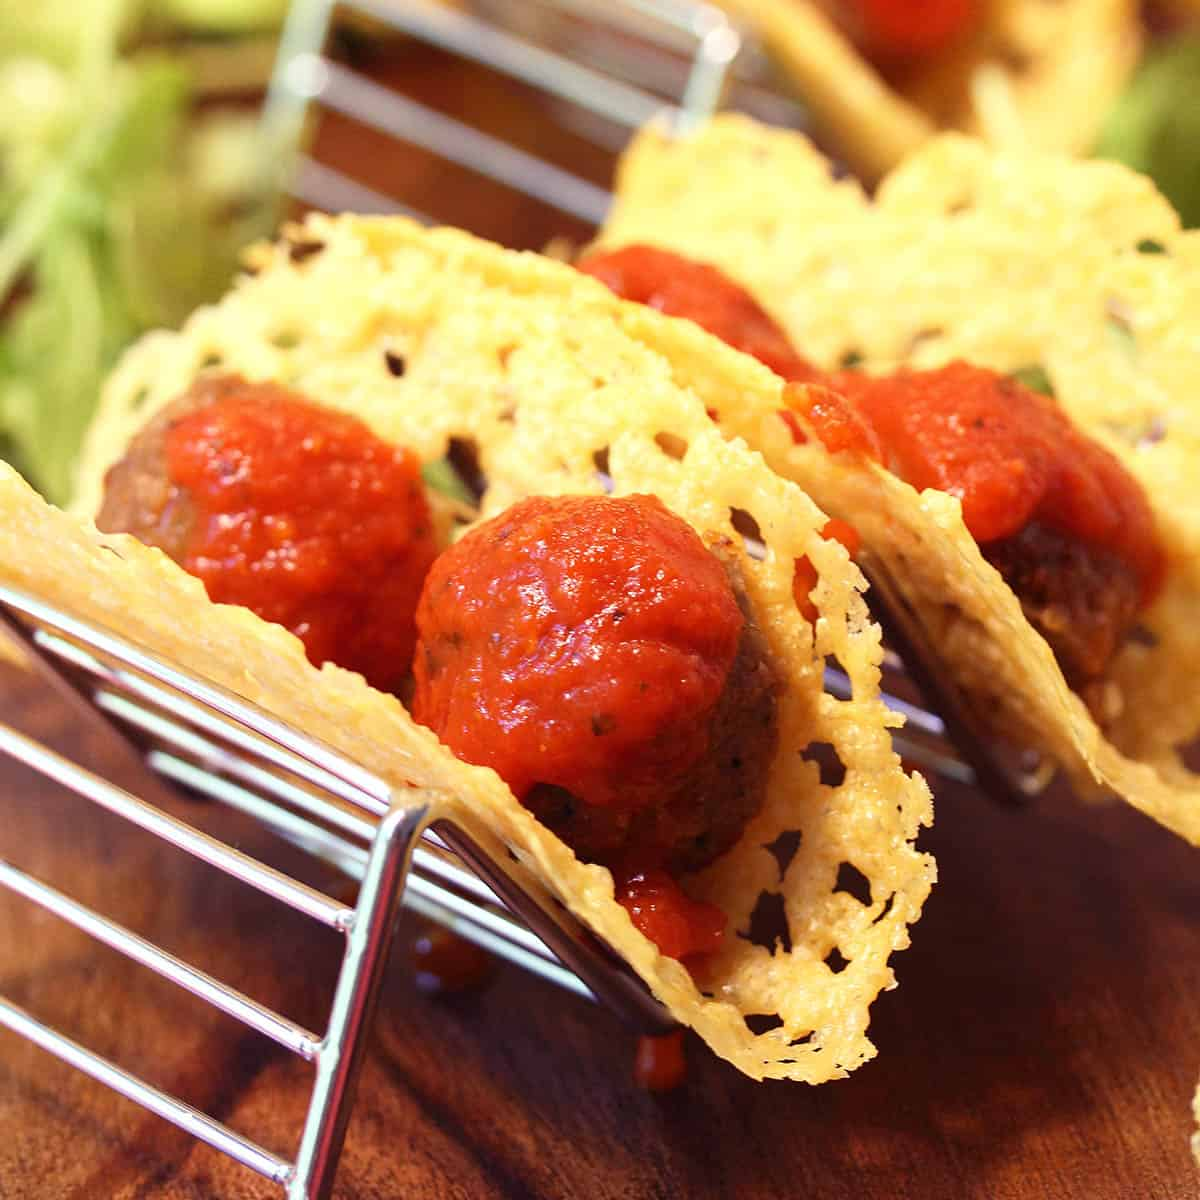 Sauce covered meatballs in cheese shells on taco stand.